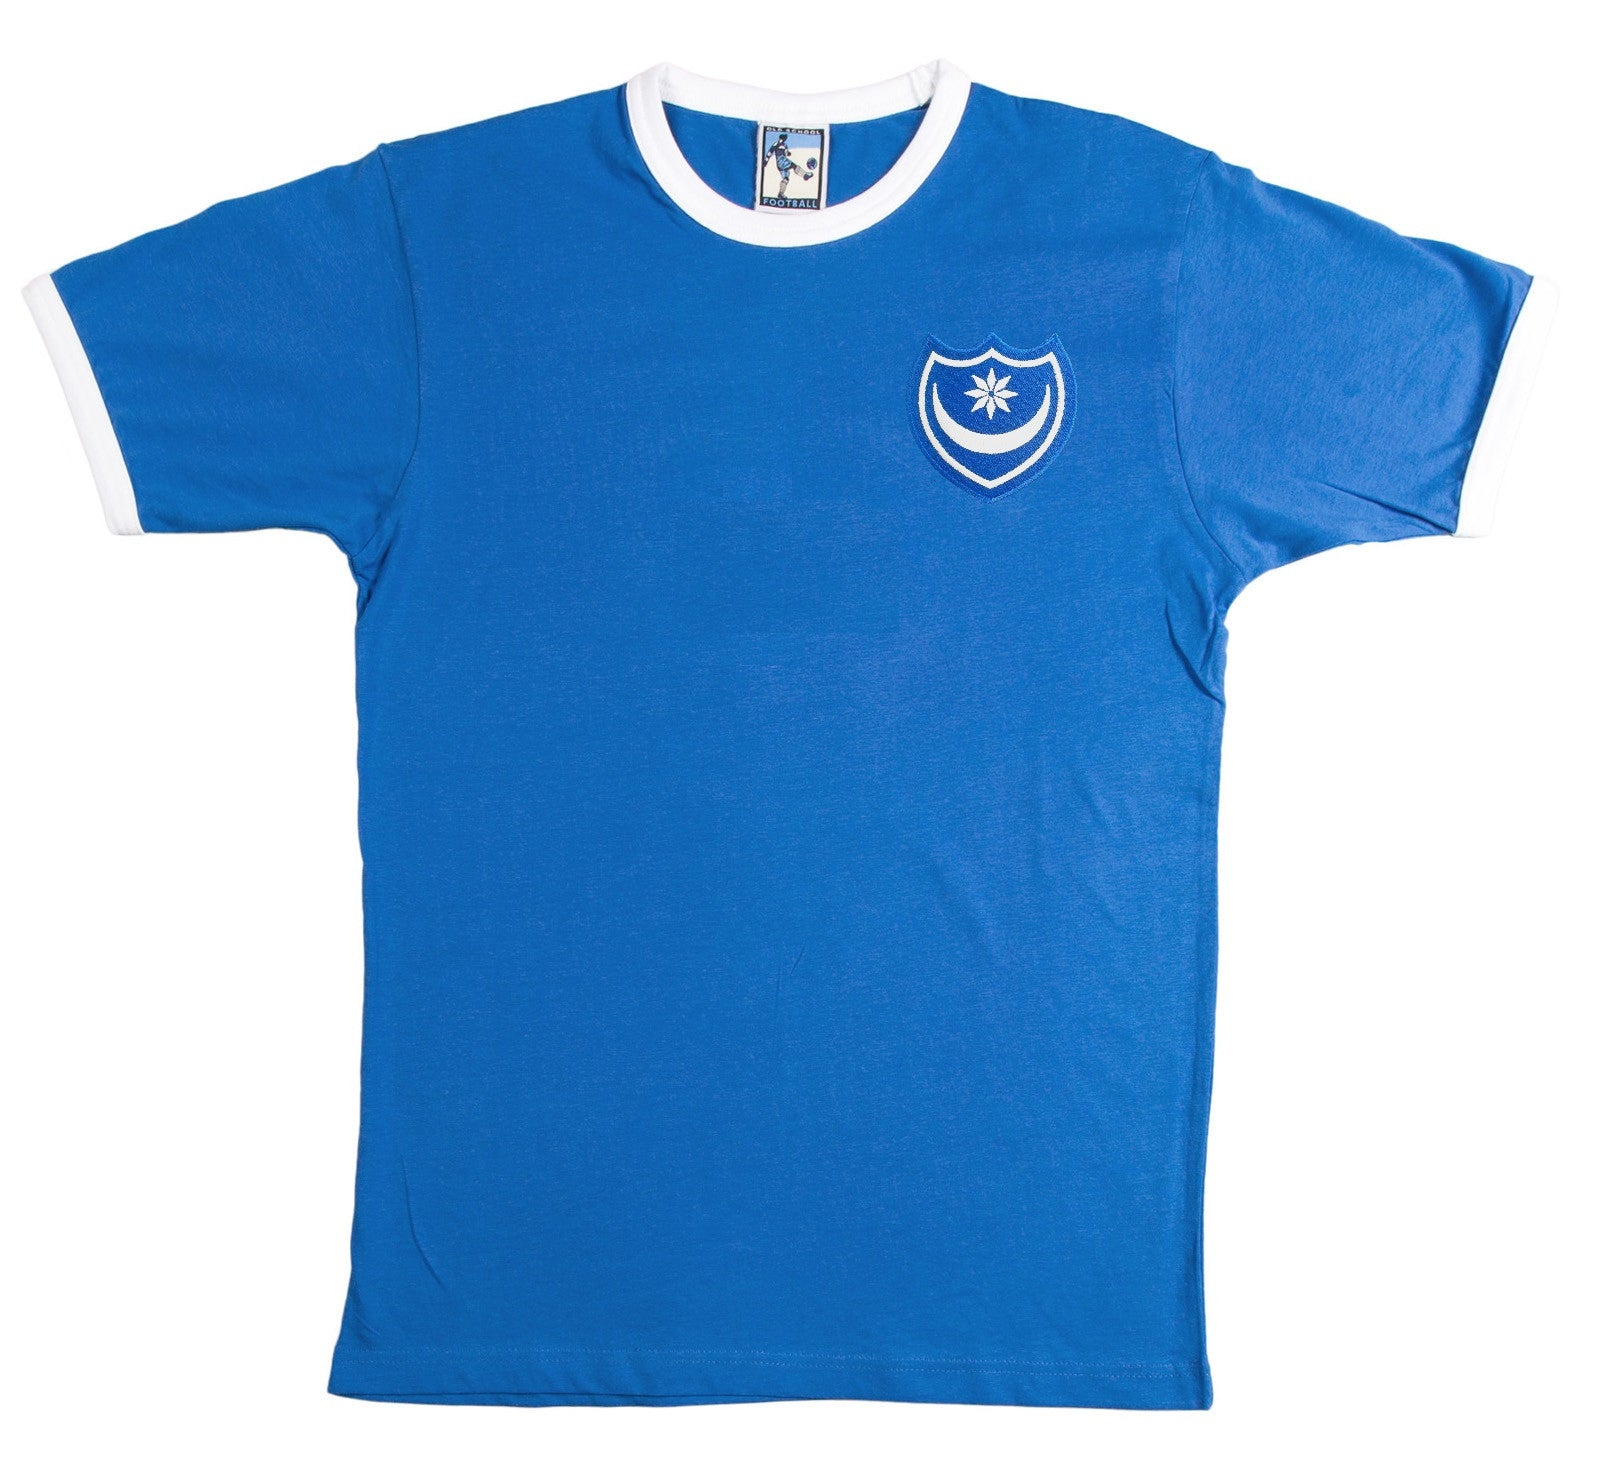 Portsmouth Retro Football T Shirt 1960s - T-shirt